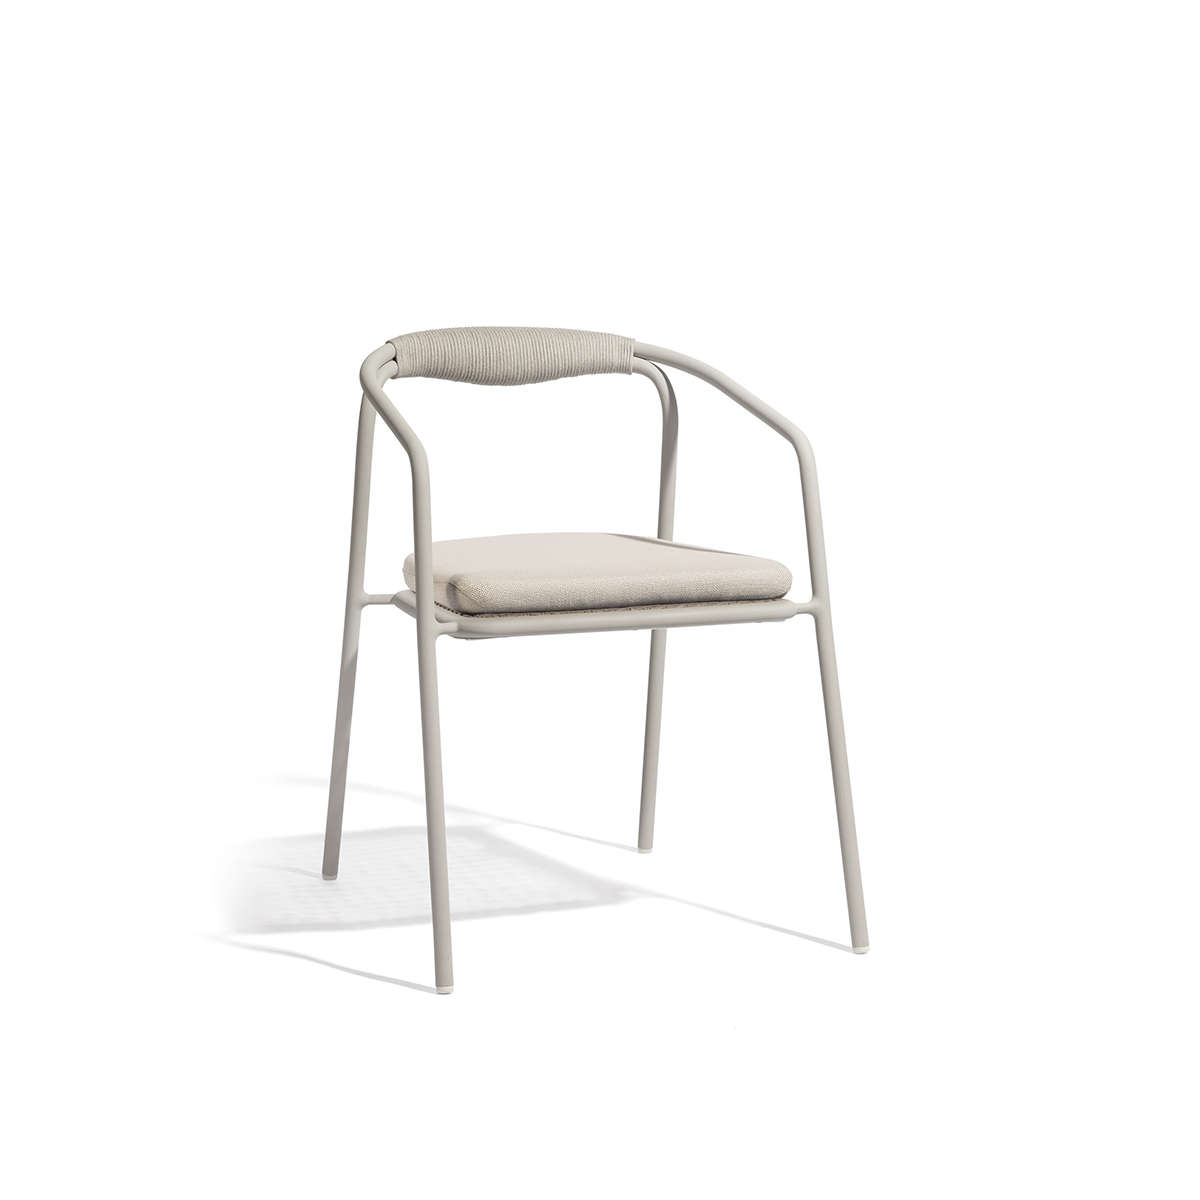 Manutti Duo Stacking Chair Cut Out White 1